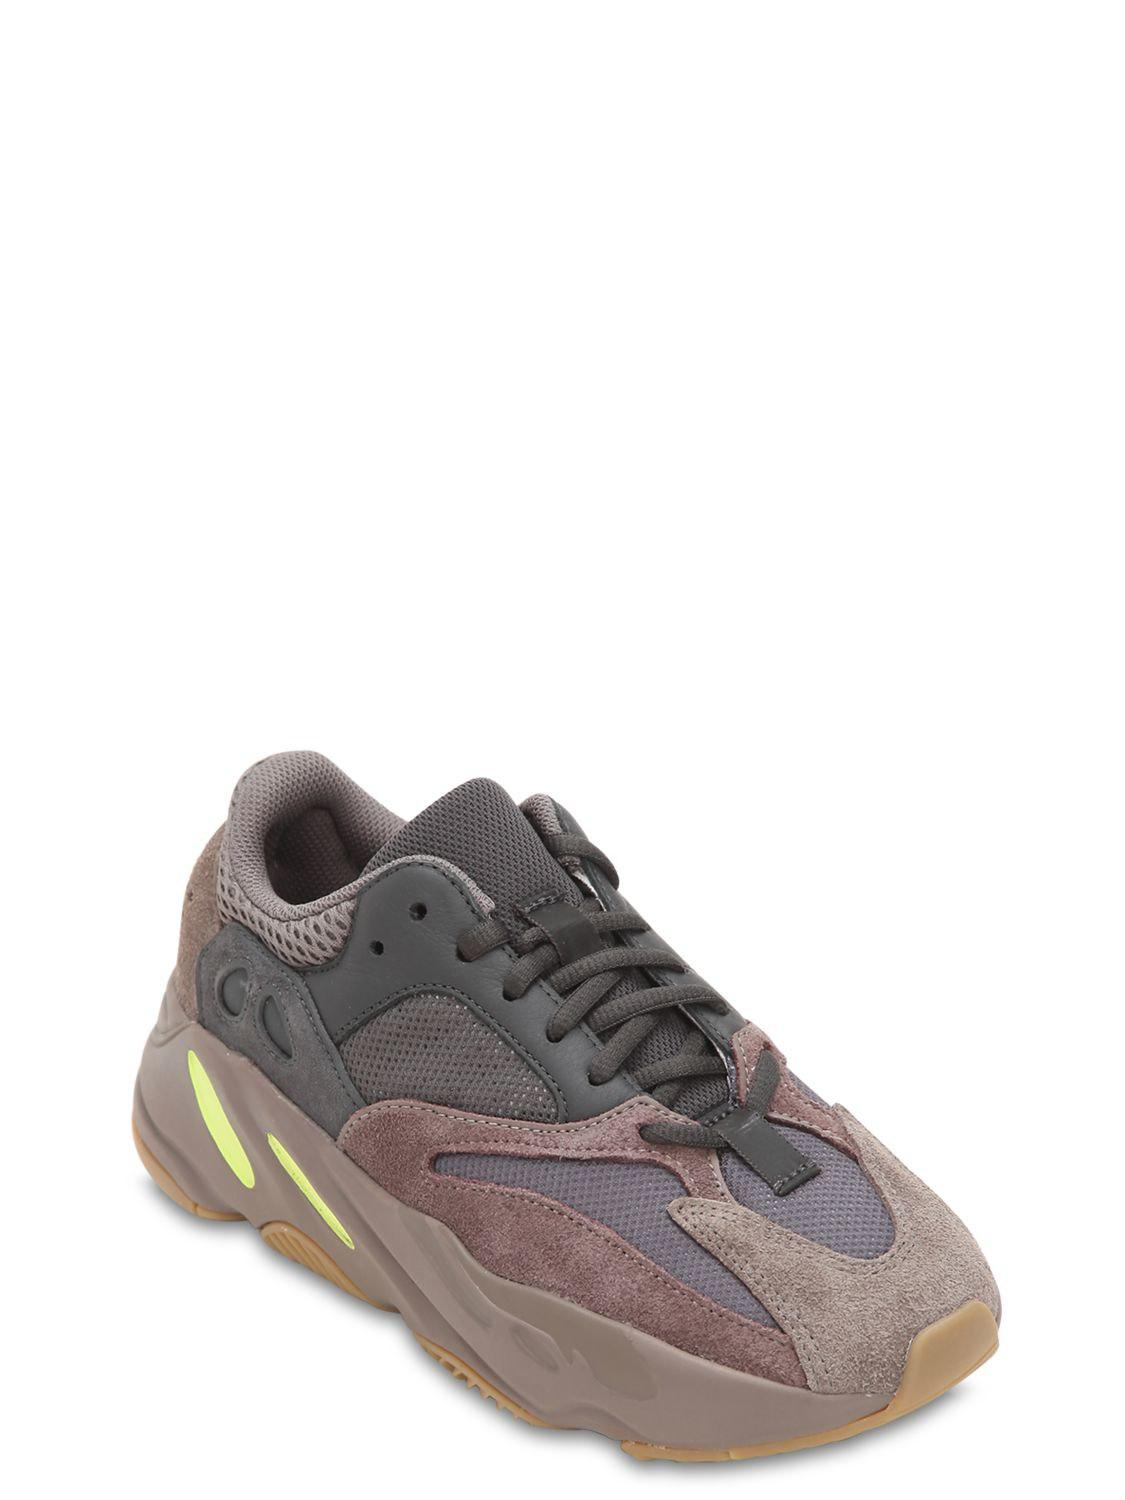 1e9affdc7 Lyst - Yeezy Boost 700 Mauve Runner Sneakers in Purple